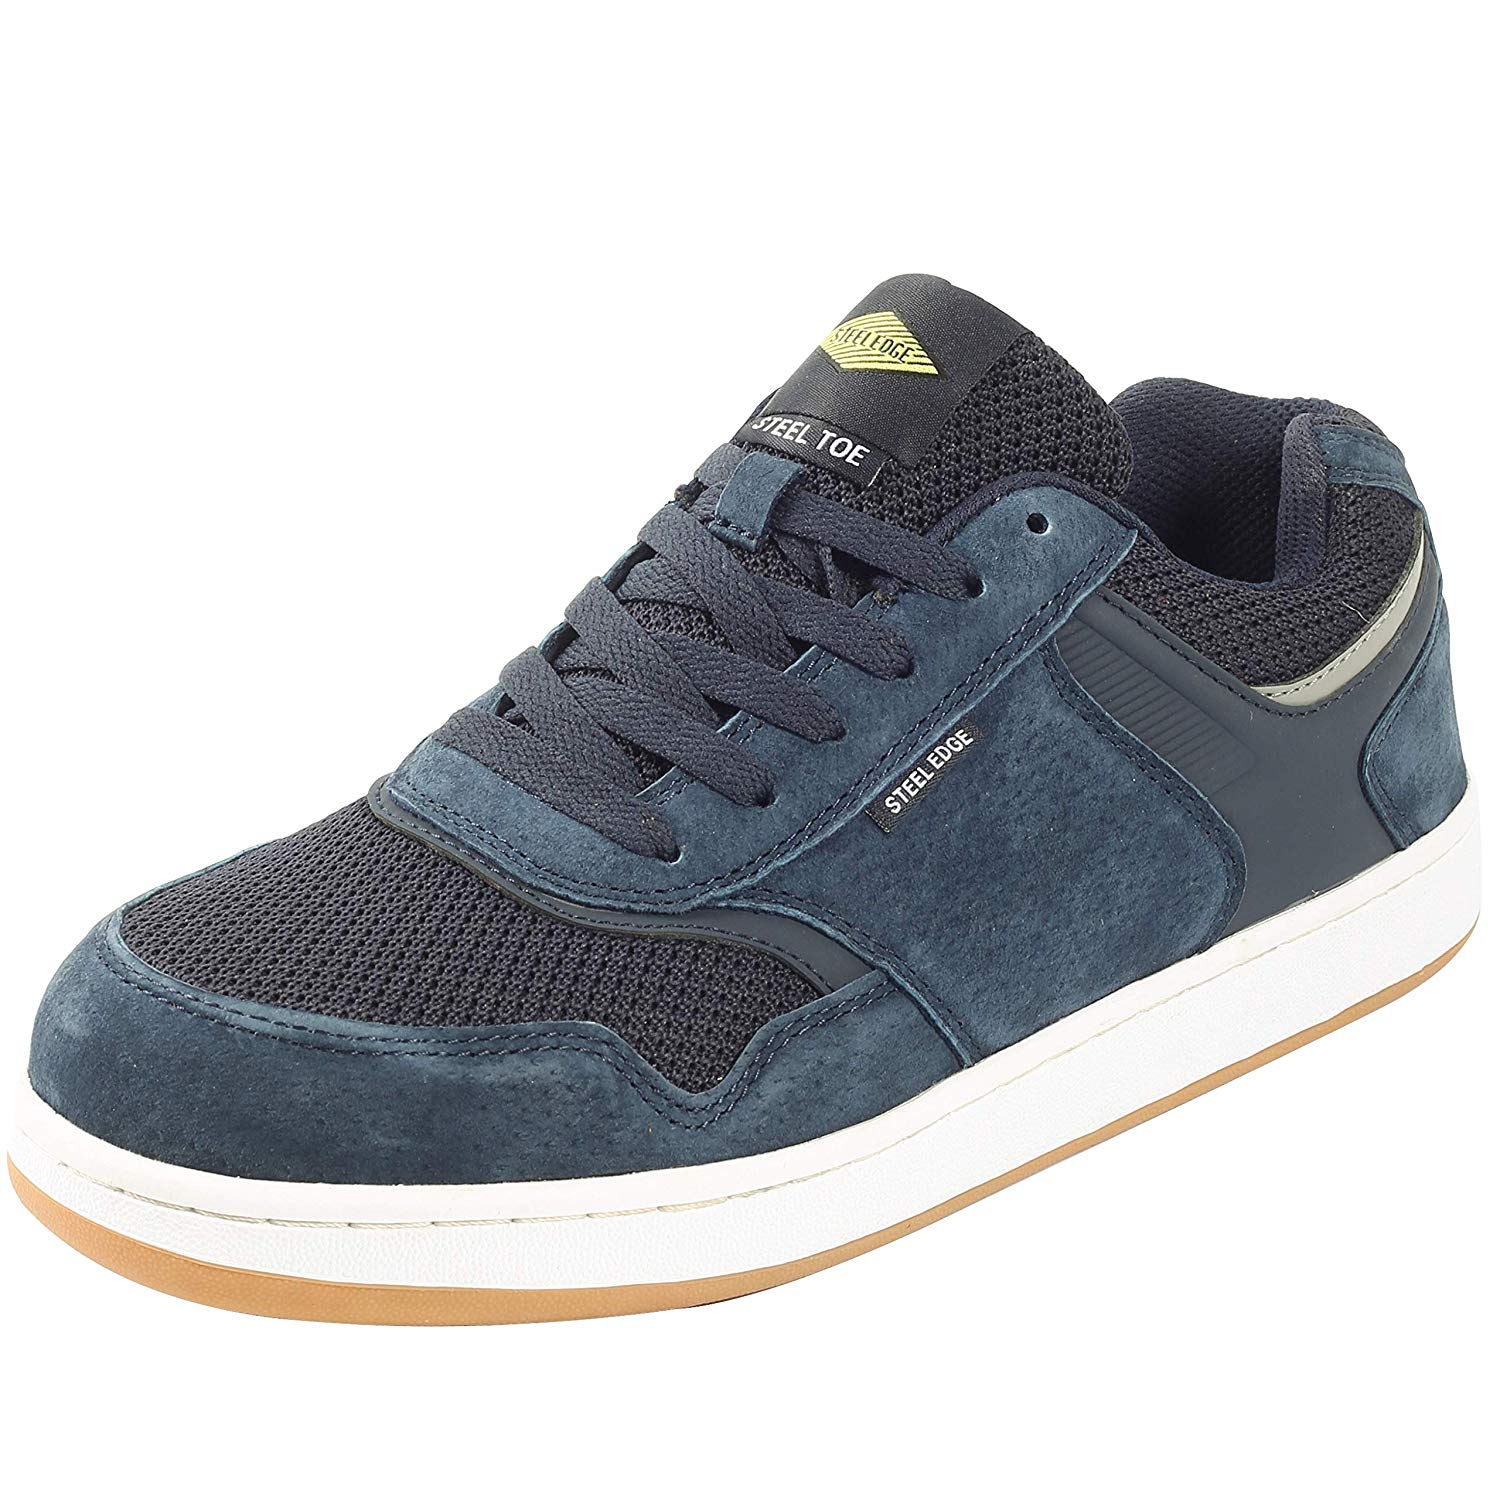 49f0e26260b Get Quotations · Safety Toe Athletic Shoes - Skater Style